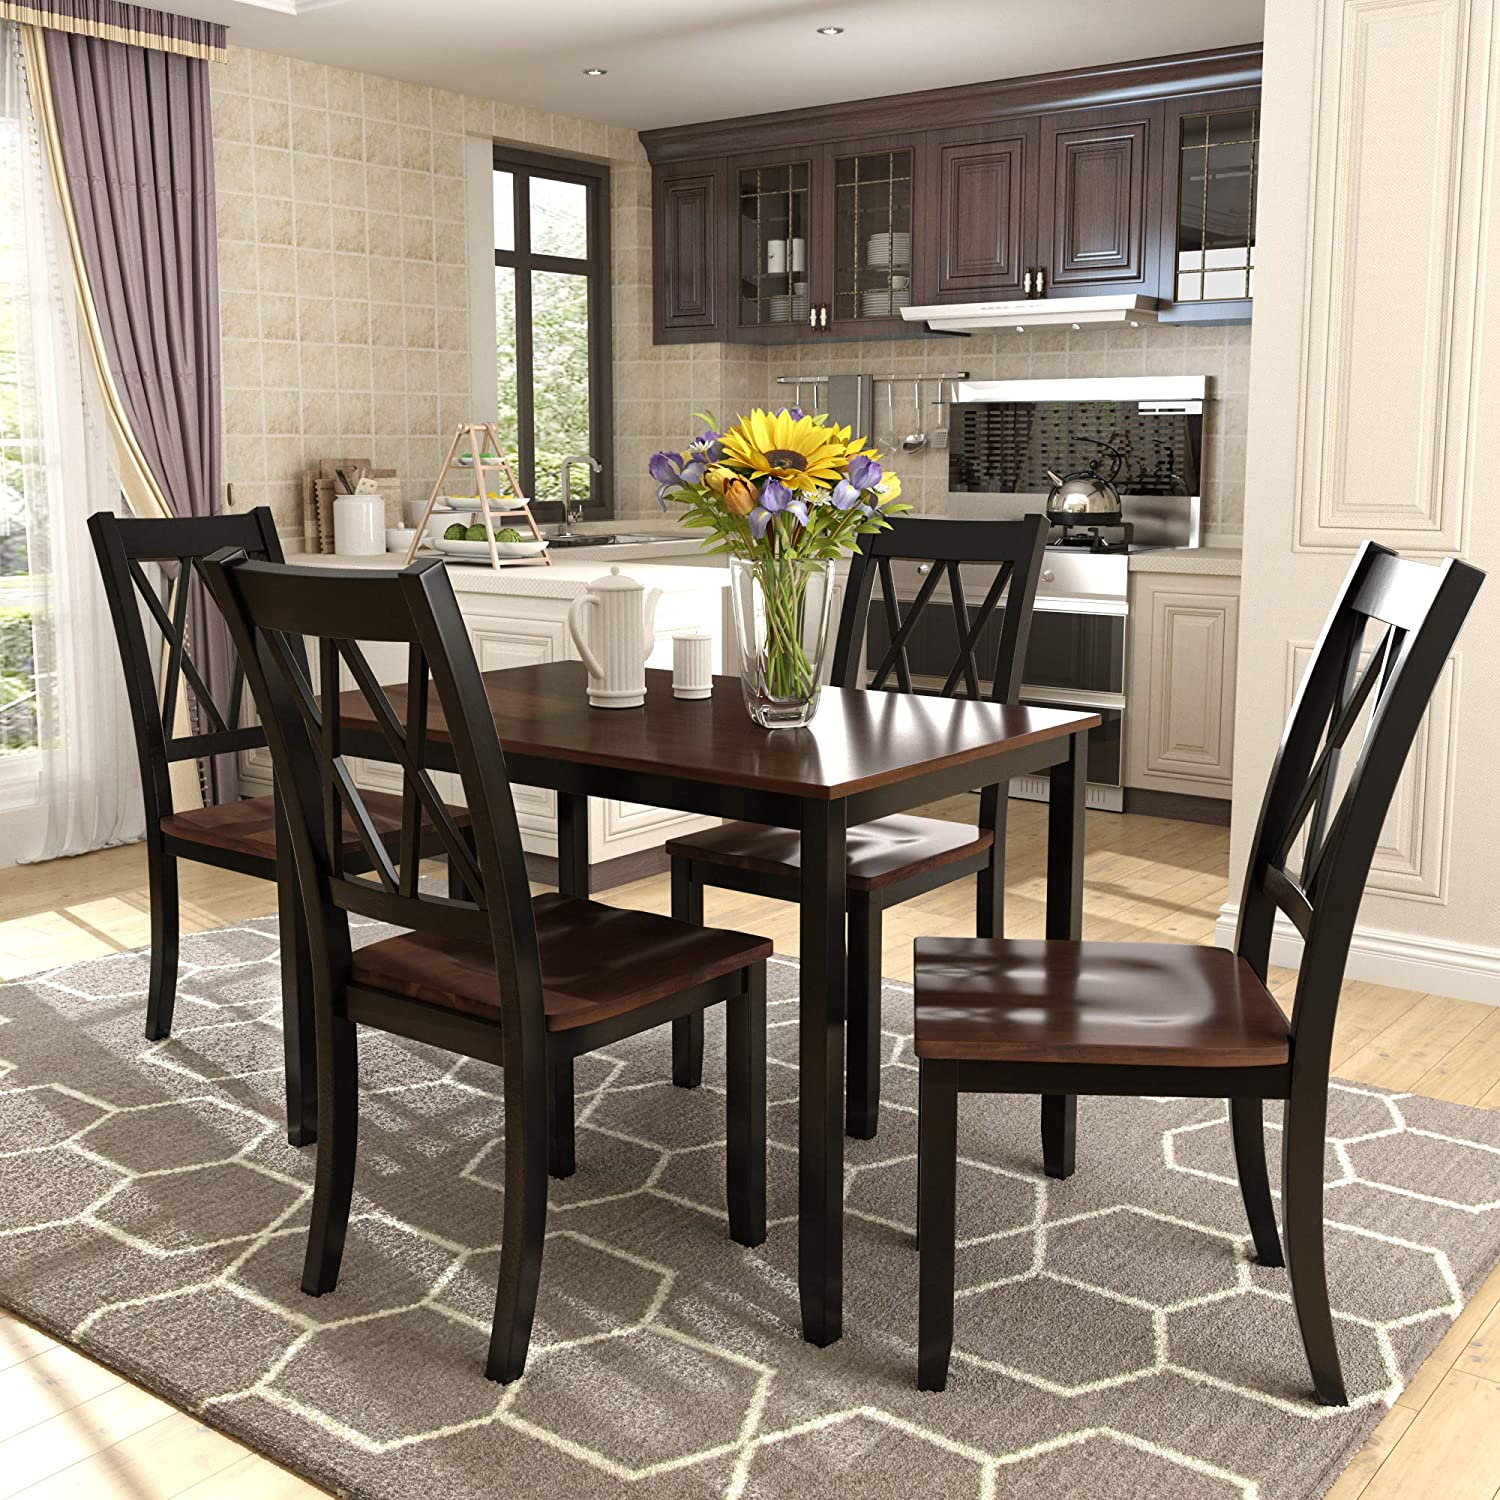 Merax Dining Table Set Kitchen Dining Table Set for 4, Wood Table and Chairs Set Black Cherry